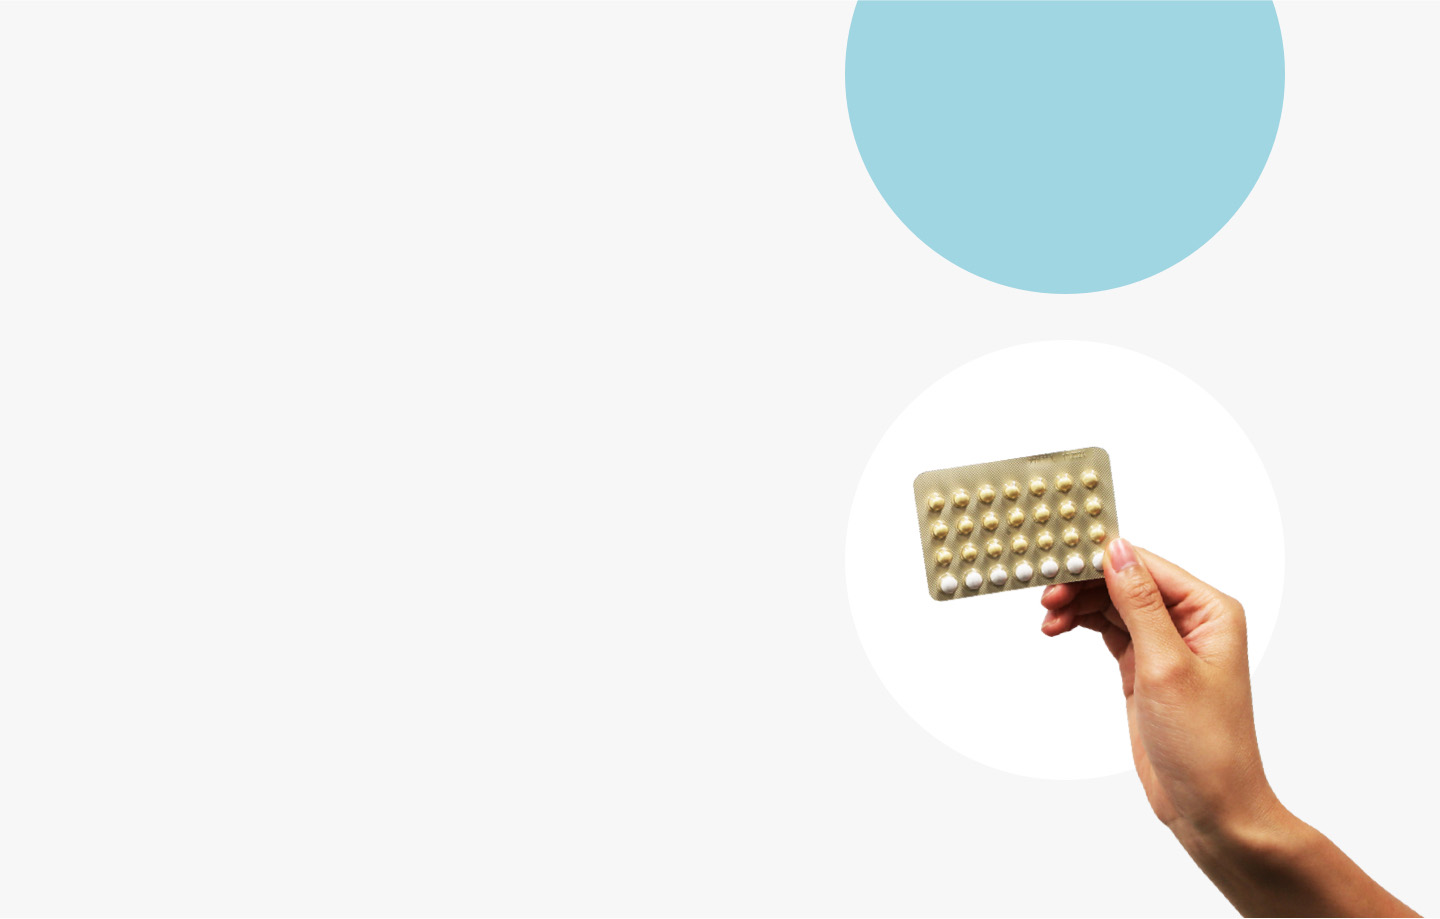 Contraceptive pill online with Rosemary Health